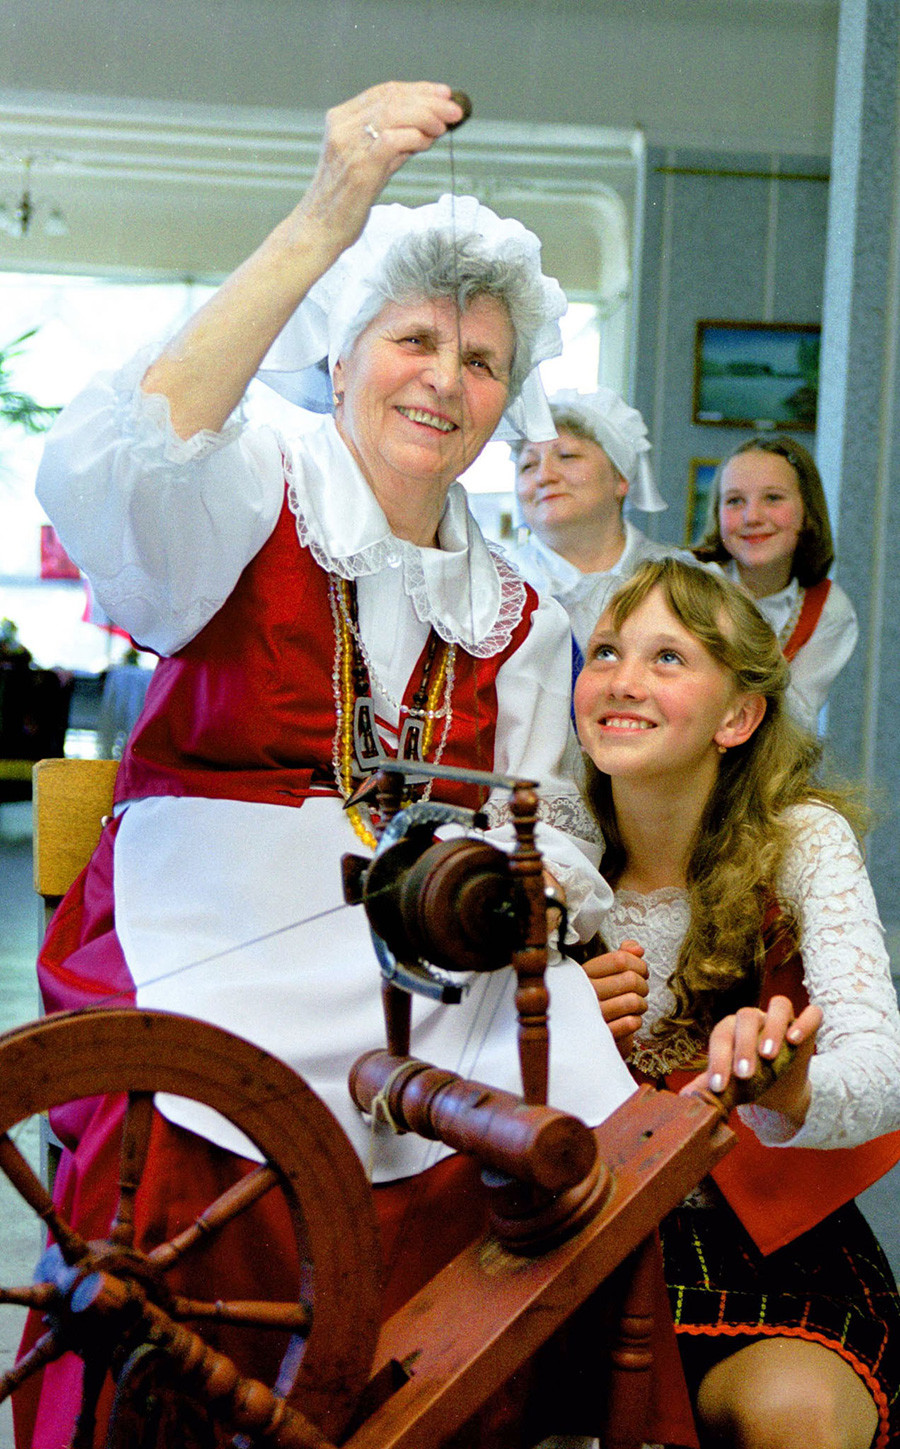 Pavlodar, Kazakhstan. Lidia Mertes (L) shows Alena Schmidt (R) how to operate an old spinning-wheel. The Germans living in Kazakhstan stick to the national cultural traditions and customs. German folklore groups, ethnic museums, and national schools function in every district of the country.